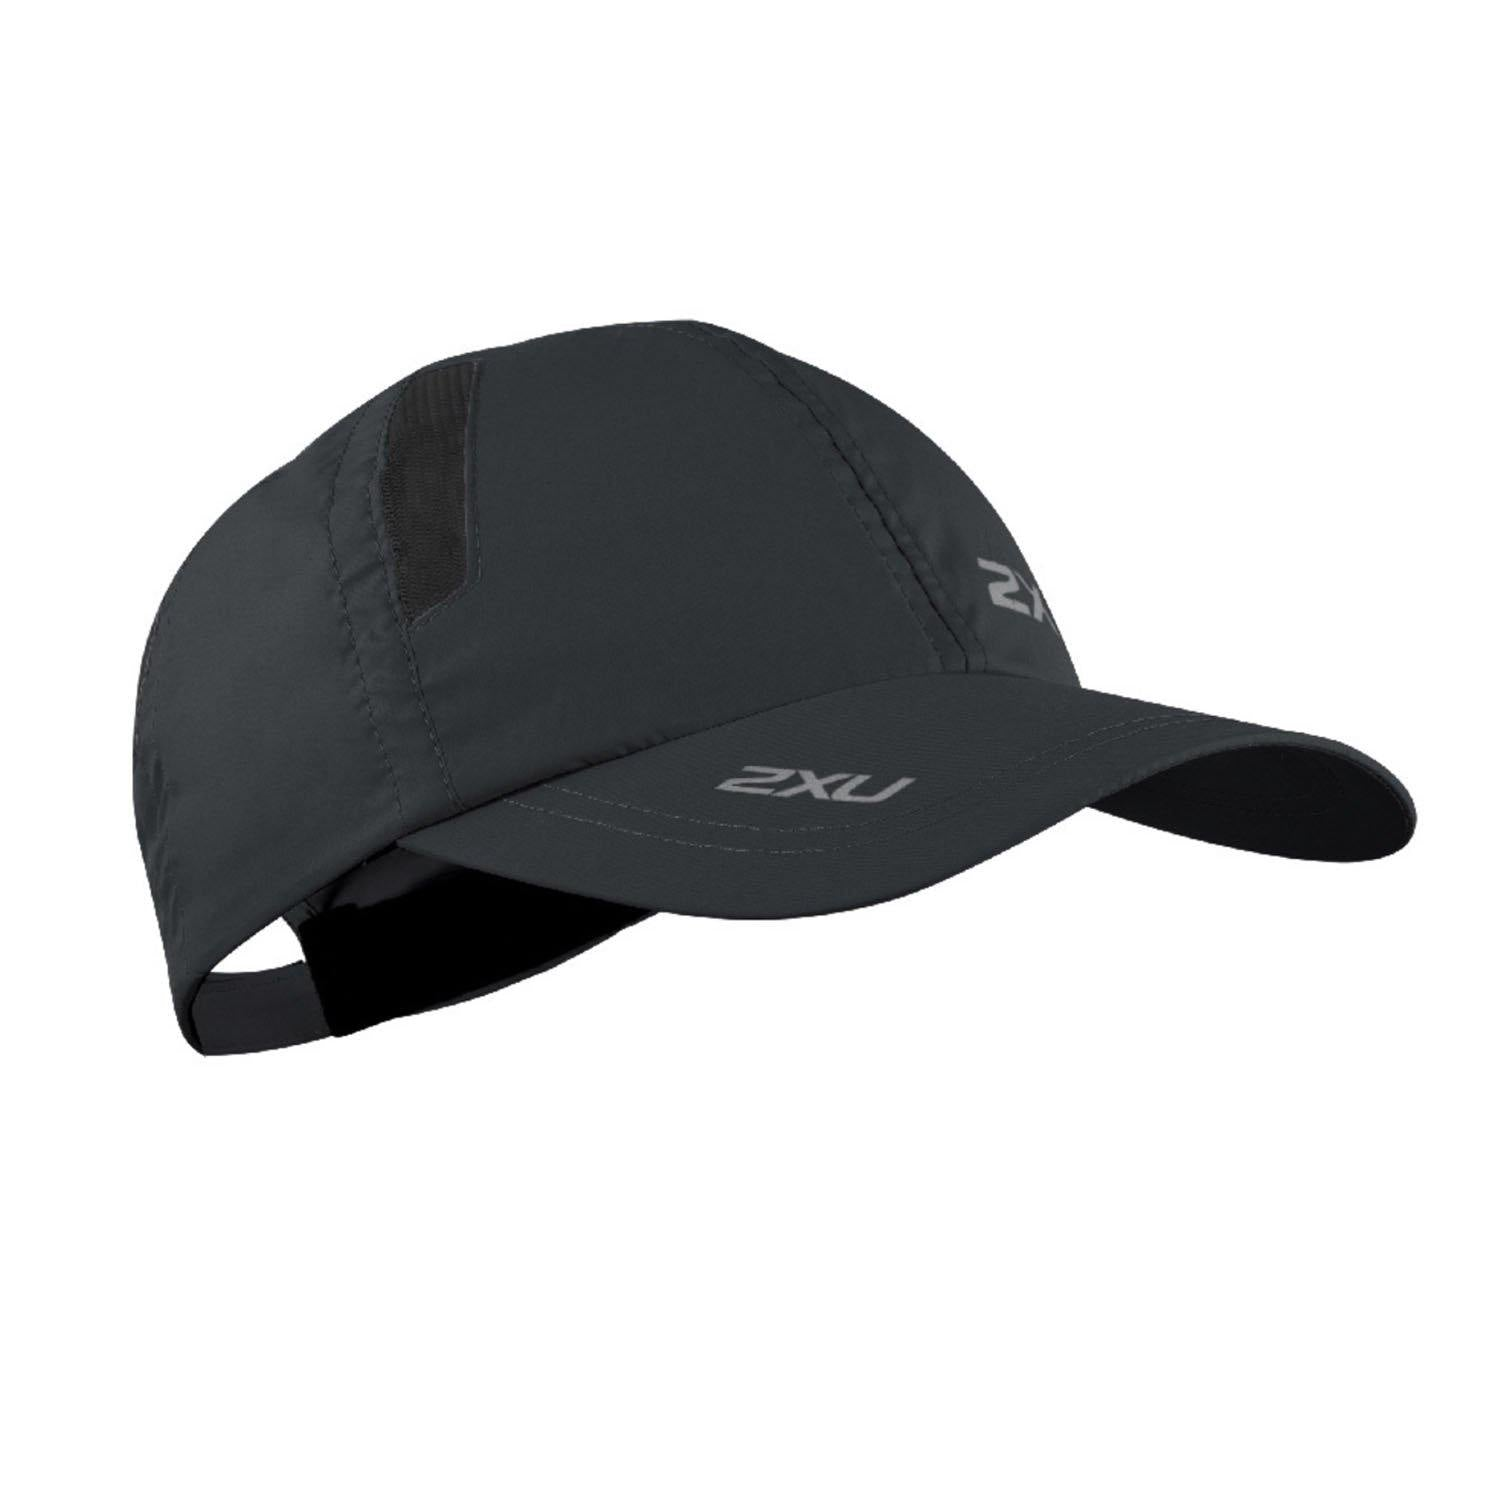 2XU Running Cap - Black